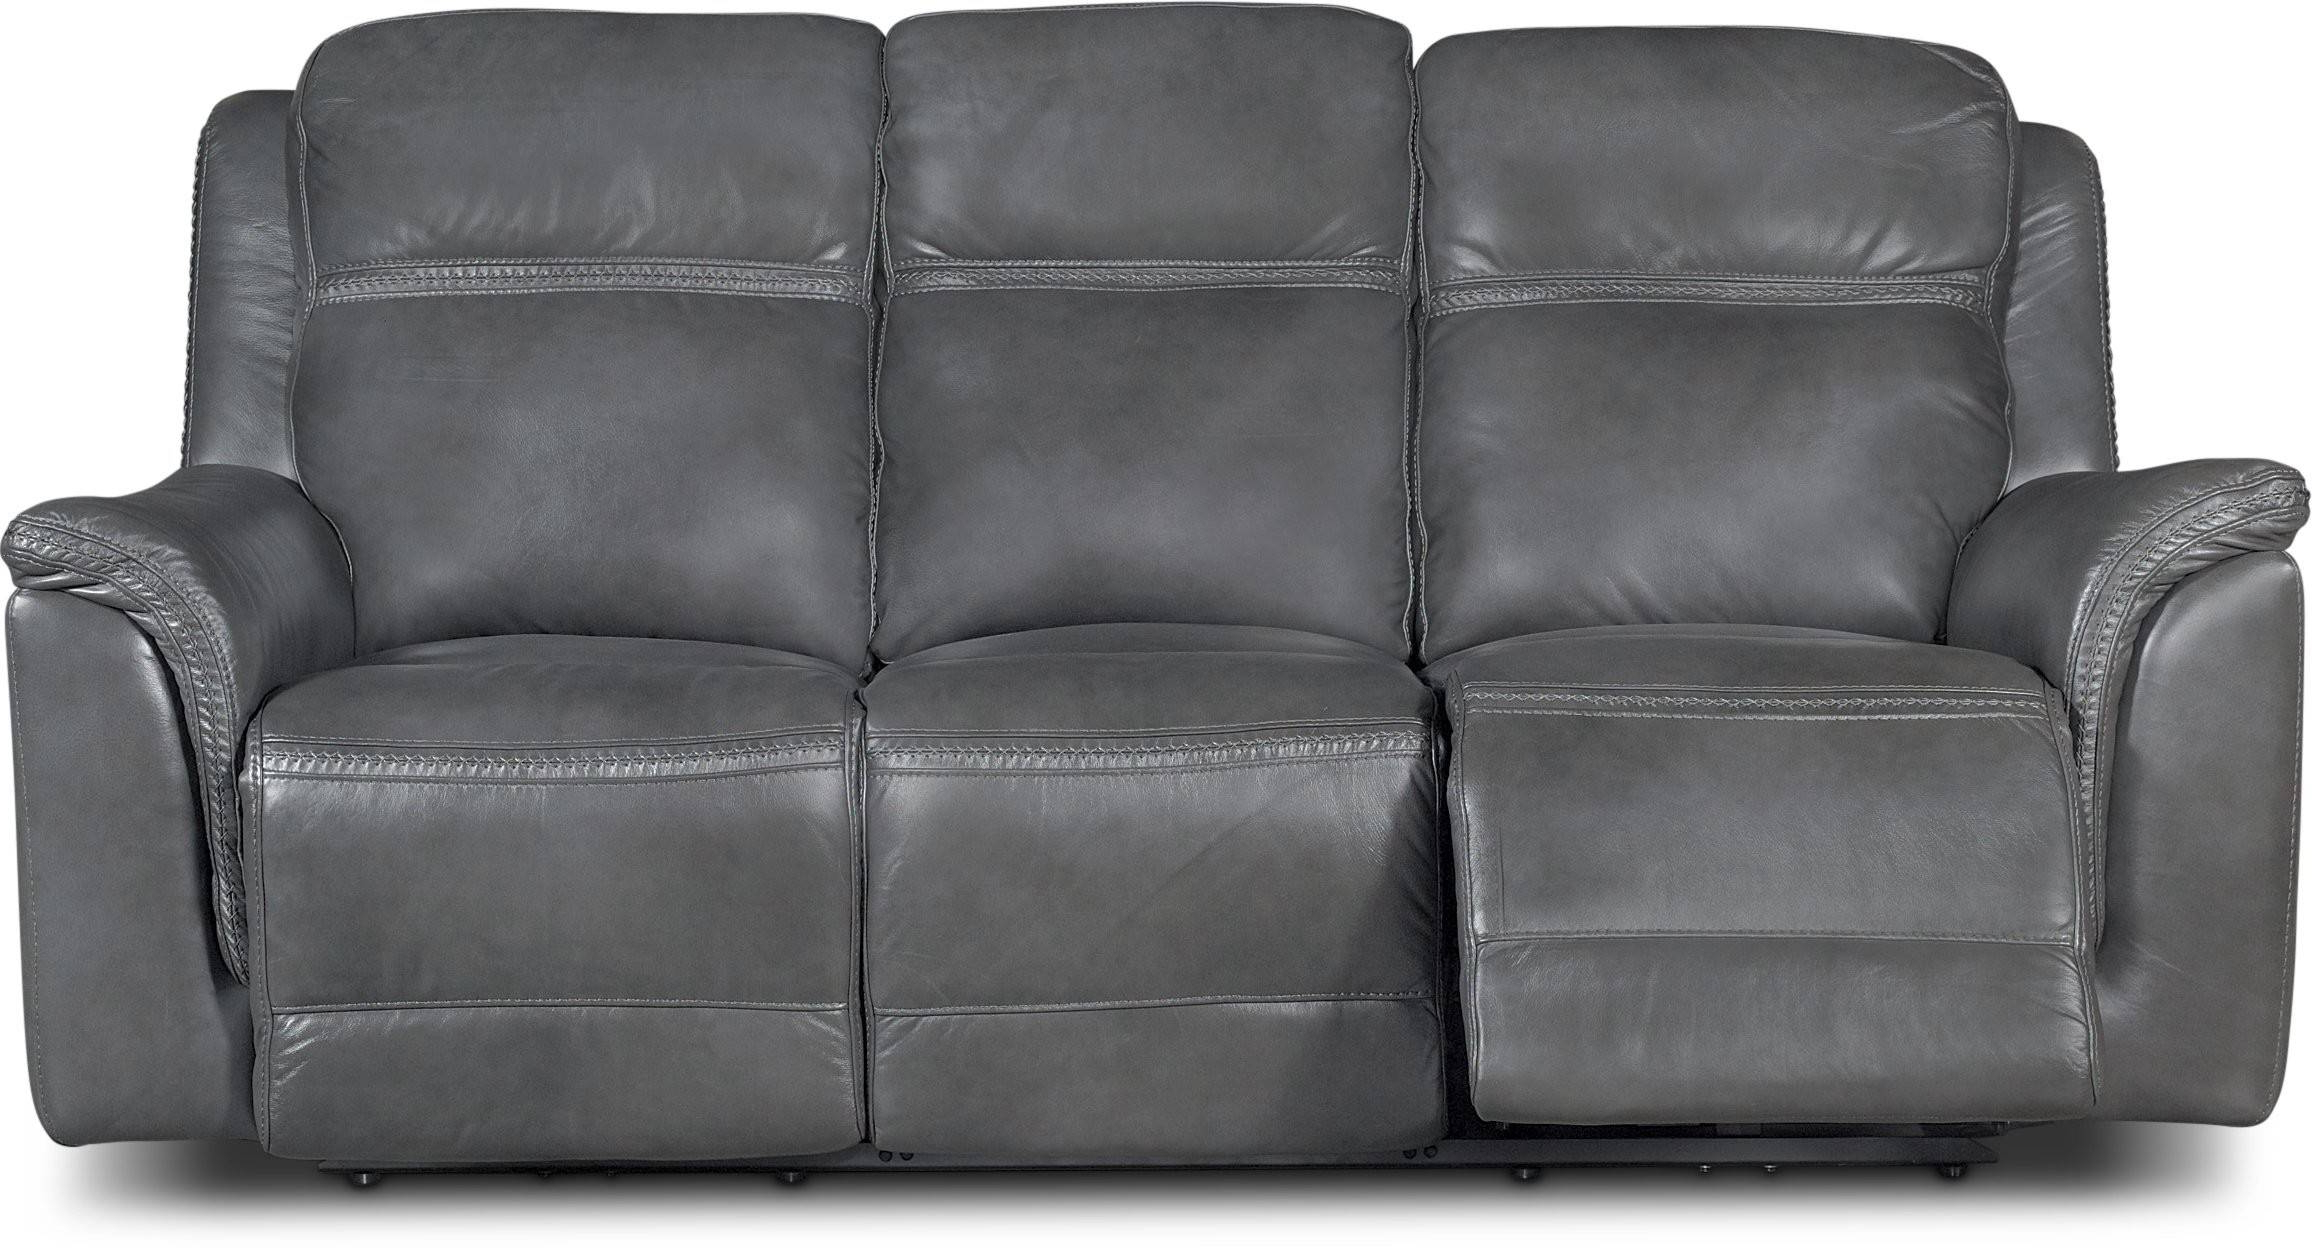 2018 Gray Reclining Sofas Intended For Gray Leather Match Power Reclining Sofa Loveseat – Designs (View 10 of 17)